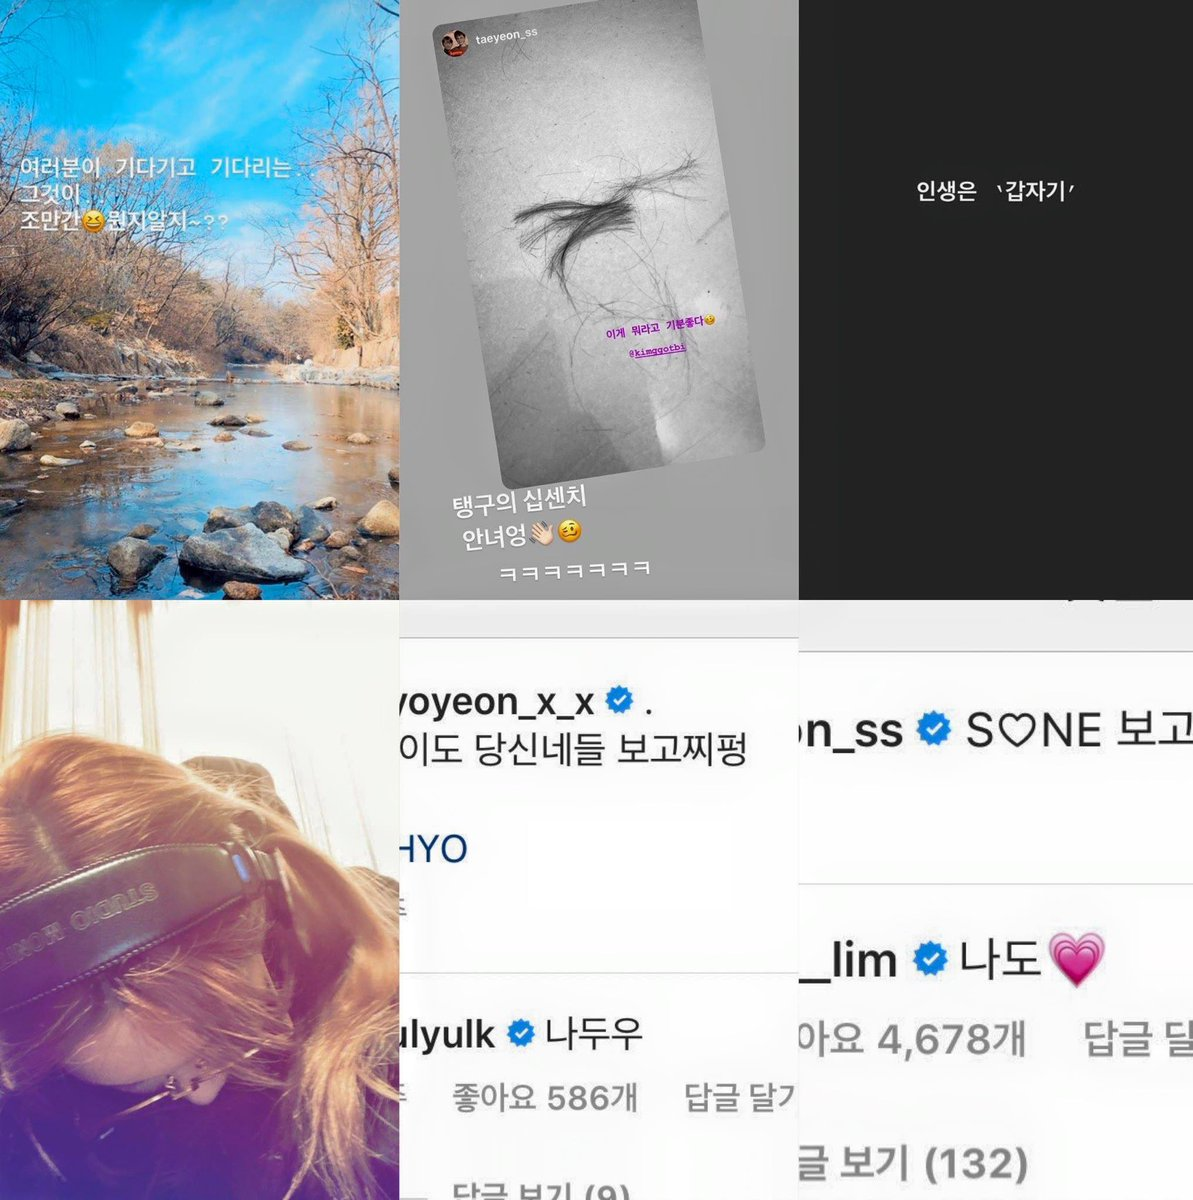 """. @GirlsGeneration theories  1) Hyo at SM Ent yesterday 2) Seohyun posted an insta story saying """"The thing that everyone is waiting for..soon"""" 3) Seohyun telling us that the """"thing"""" from her ig story isn't Ji Anna (so it's prolly not about her drama) 4) Taeyeon cut her hair  (+) <br>http://pic.twitter.com/XT3JeY65Rs"""